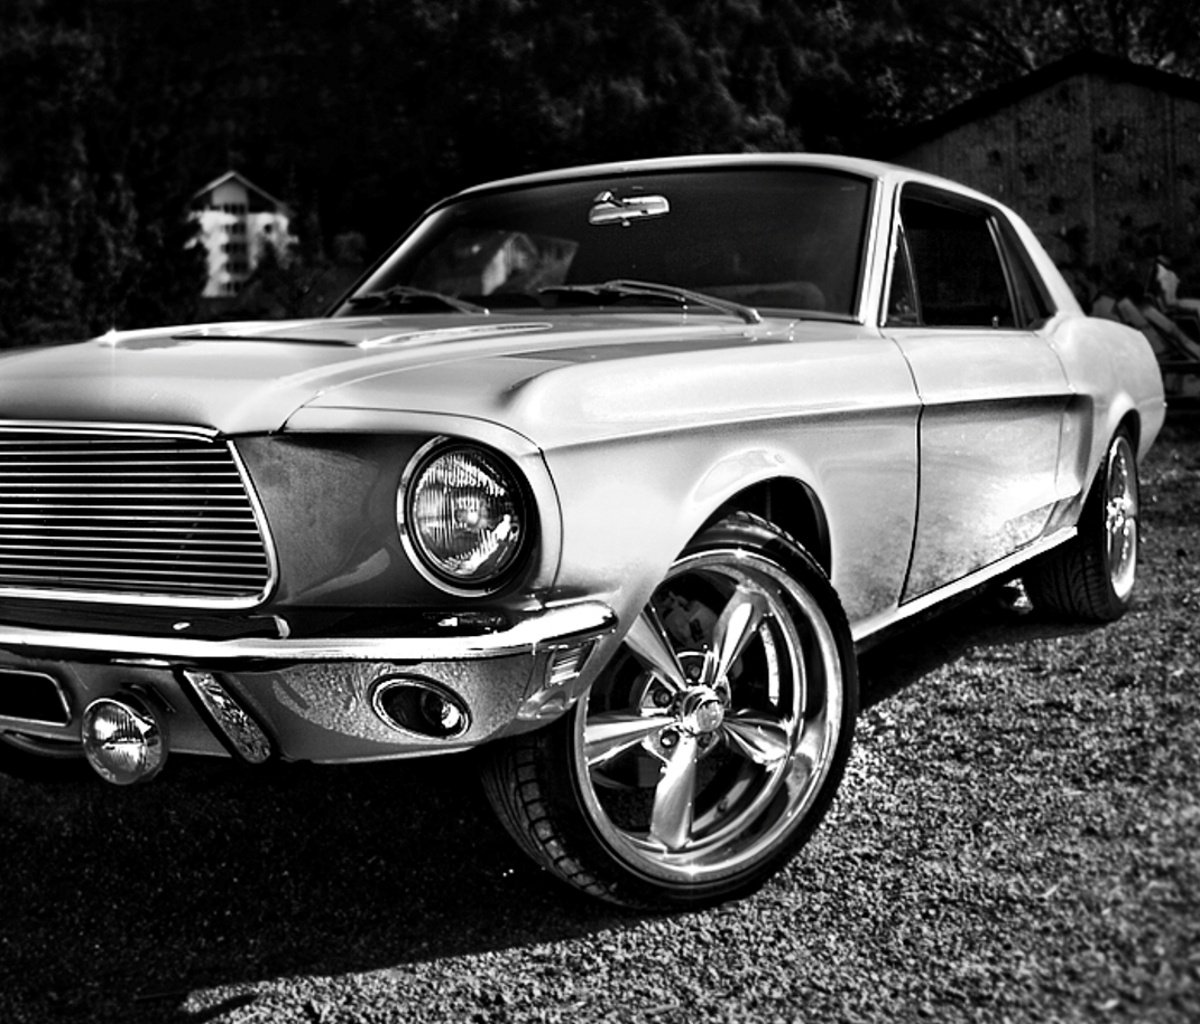 free 1200X1024 ford mustang 1200x1024 wallpaper screensaver preview id 1200x1024